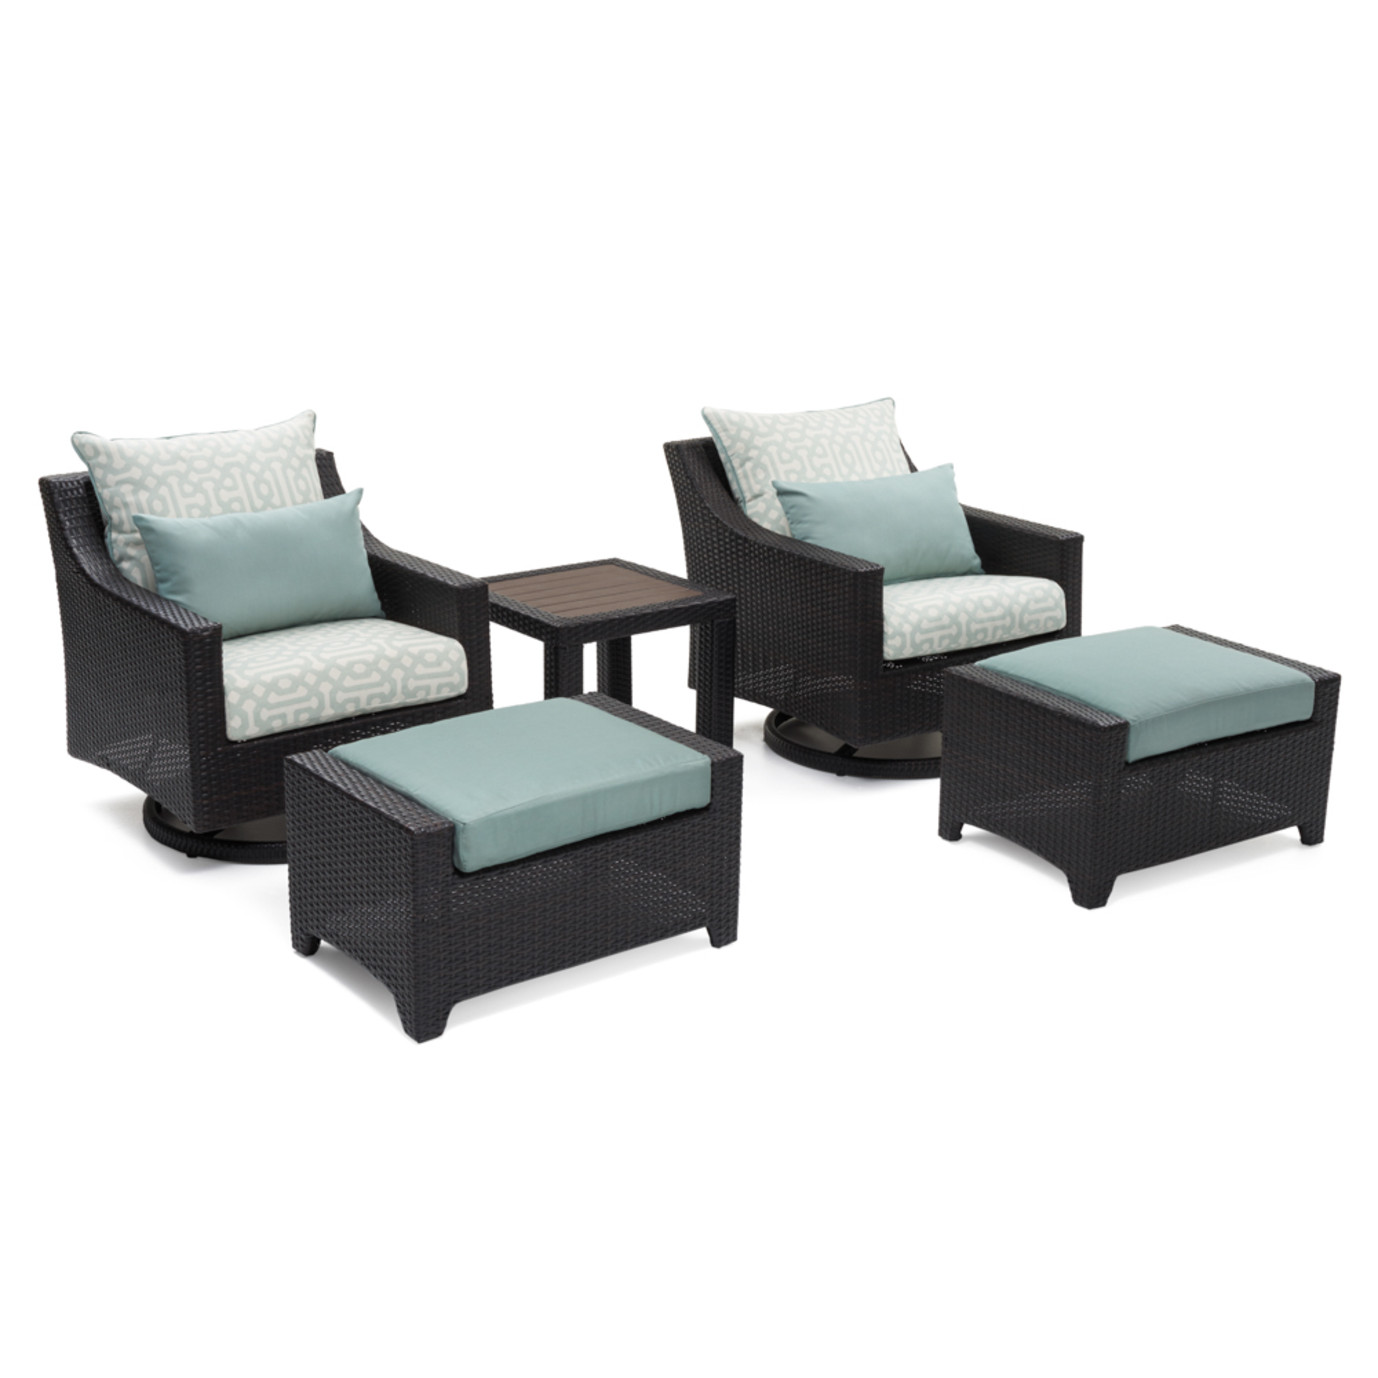 Deco™ Deluxe 5 Piece Motion Club & Ottoman Set - Spa Blue